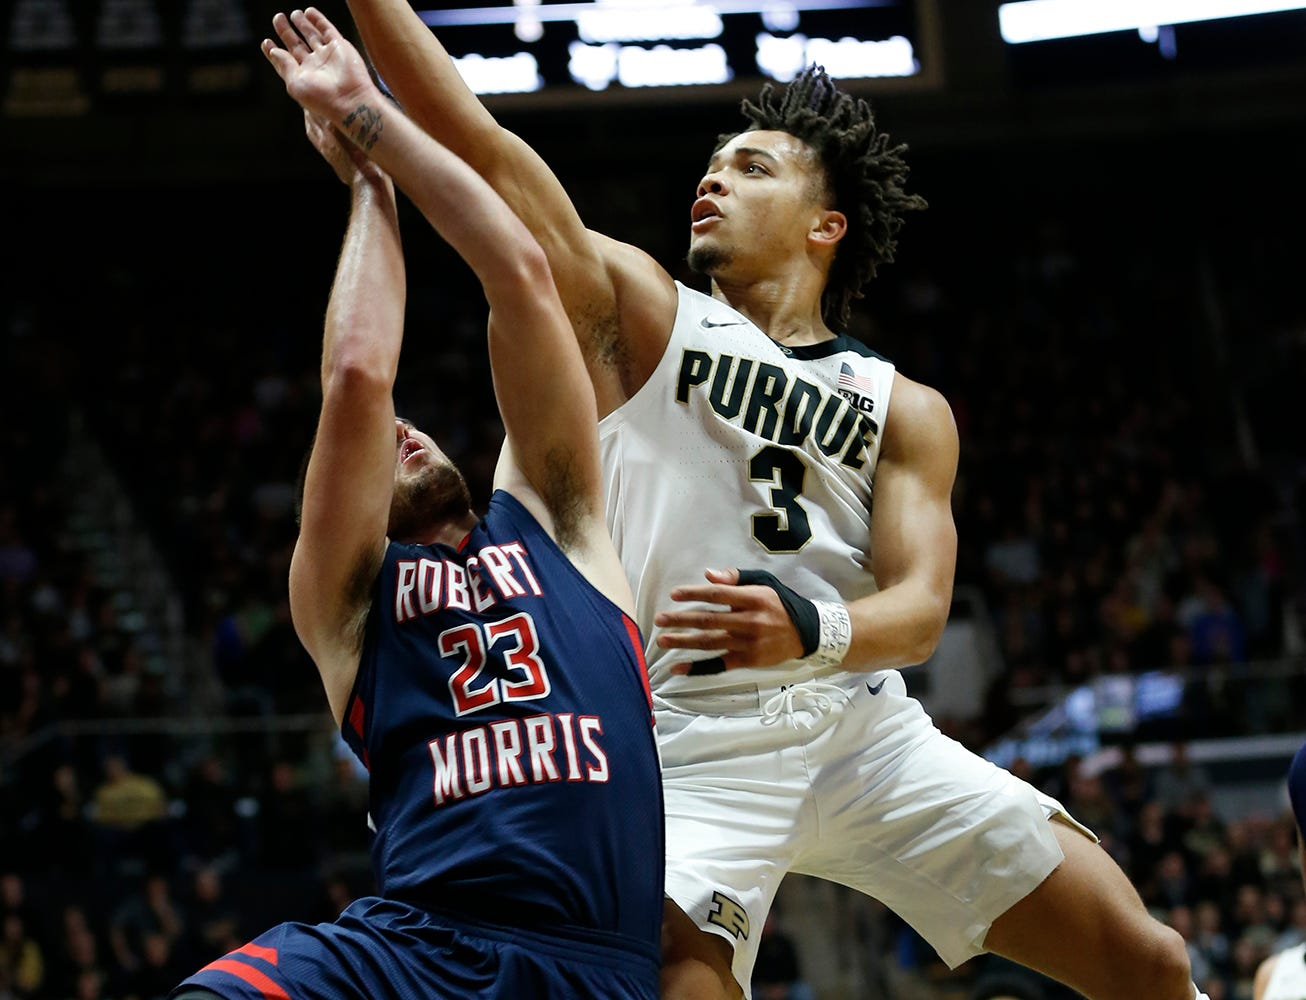 Carsen Edwards of Purdue with a shot over Matty McConnell of Robert Morris Friday, November 23, 2018, at Mackey Arena. Purdue defeated Robert Morris 84-46.